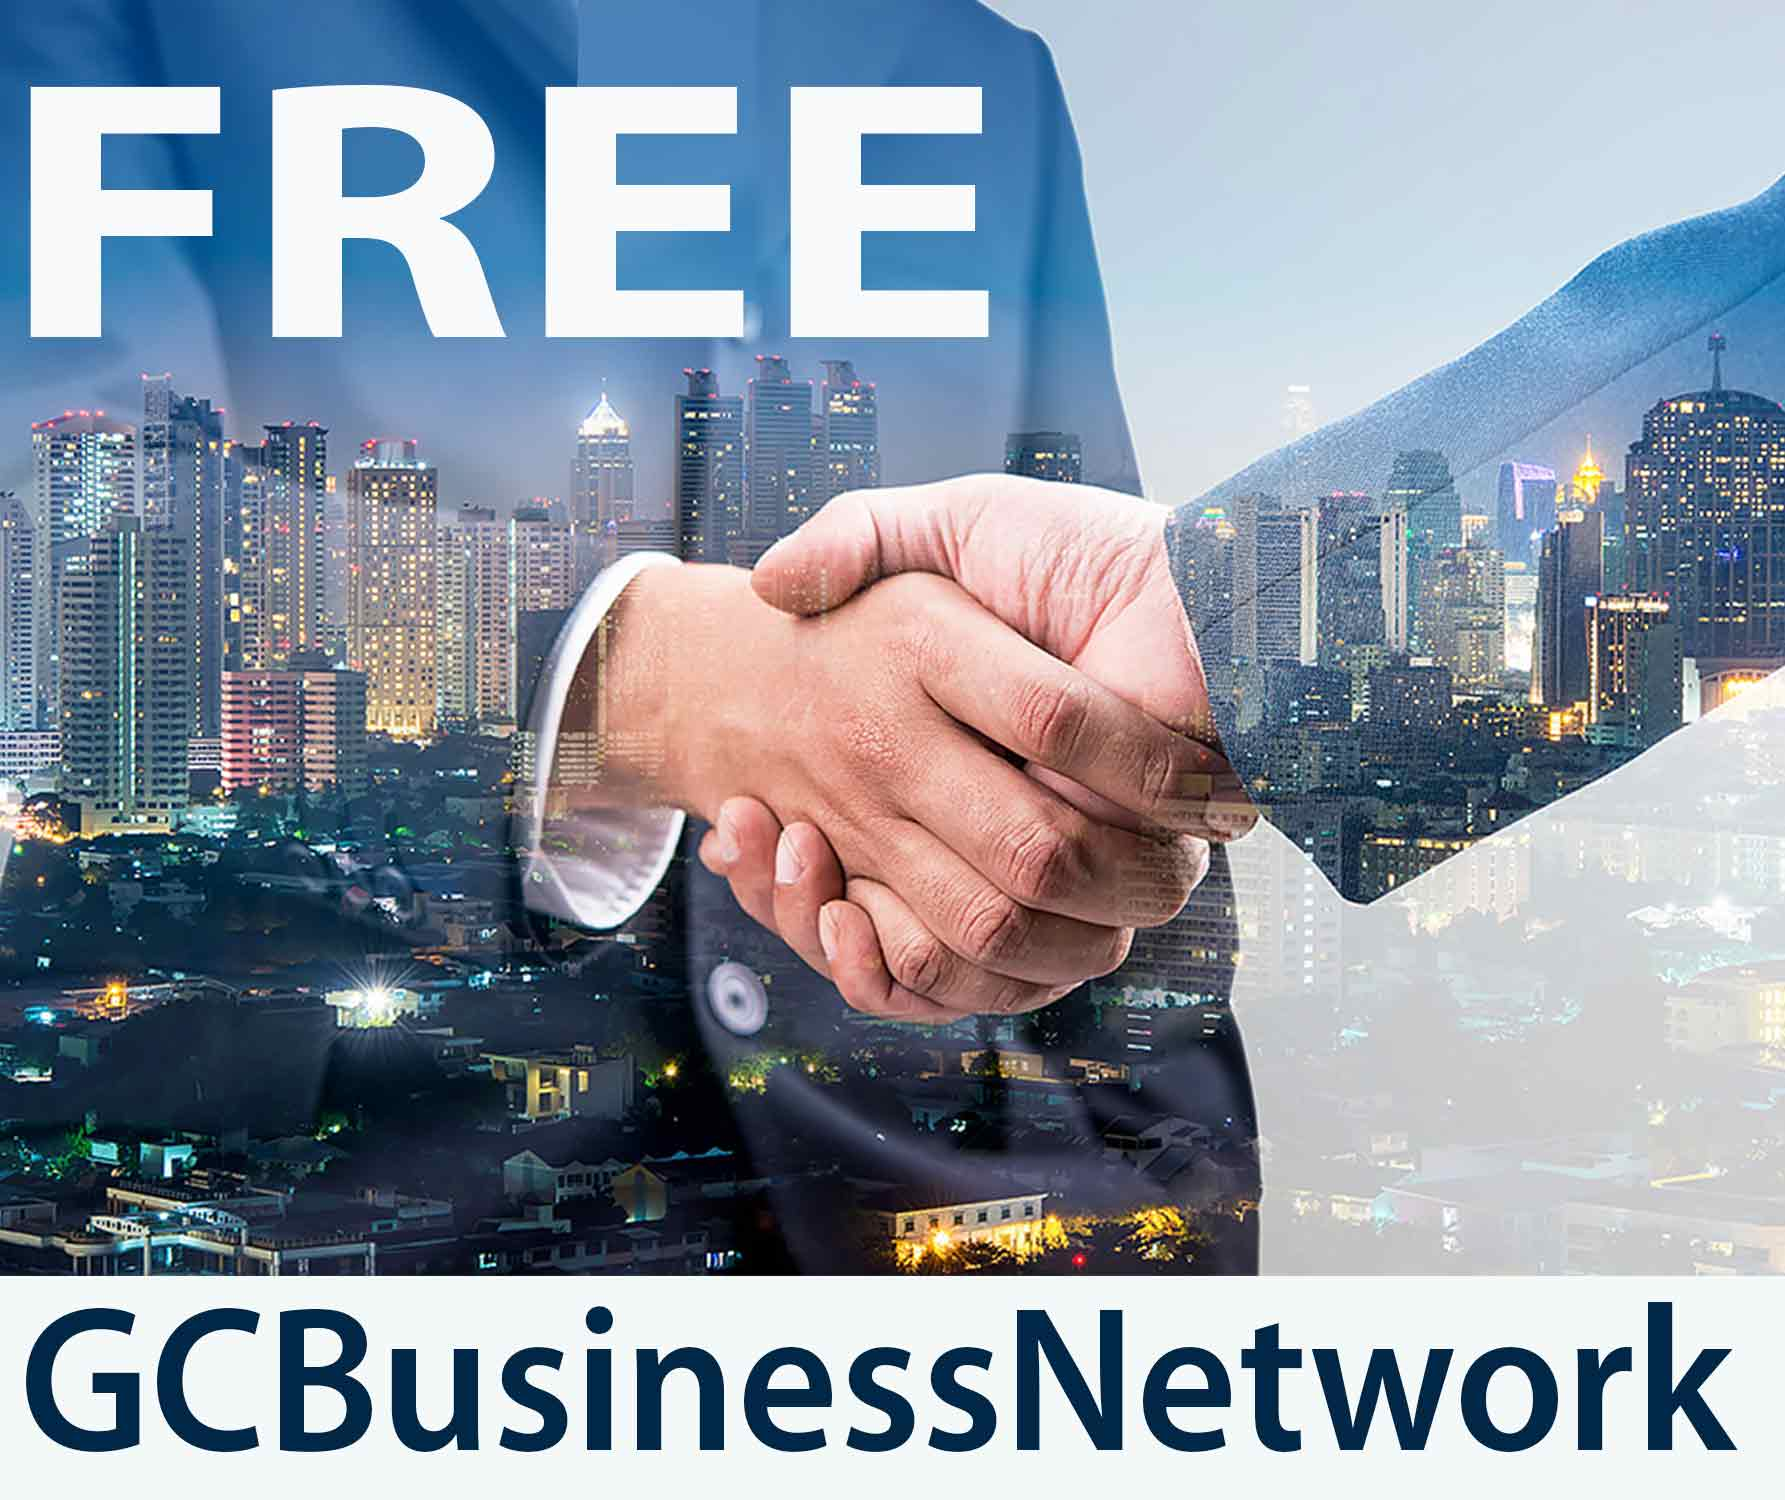 GC-Business-Network-0003